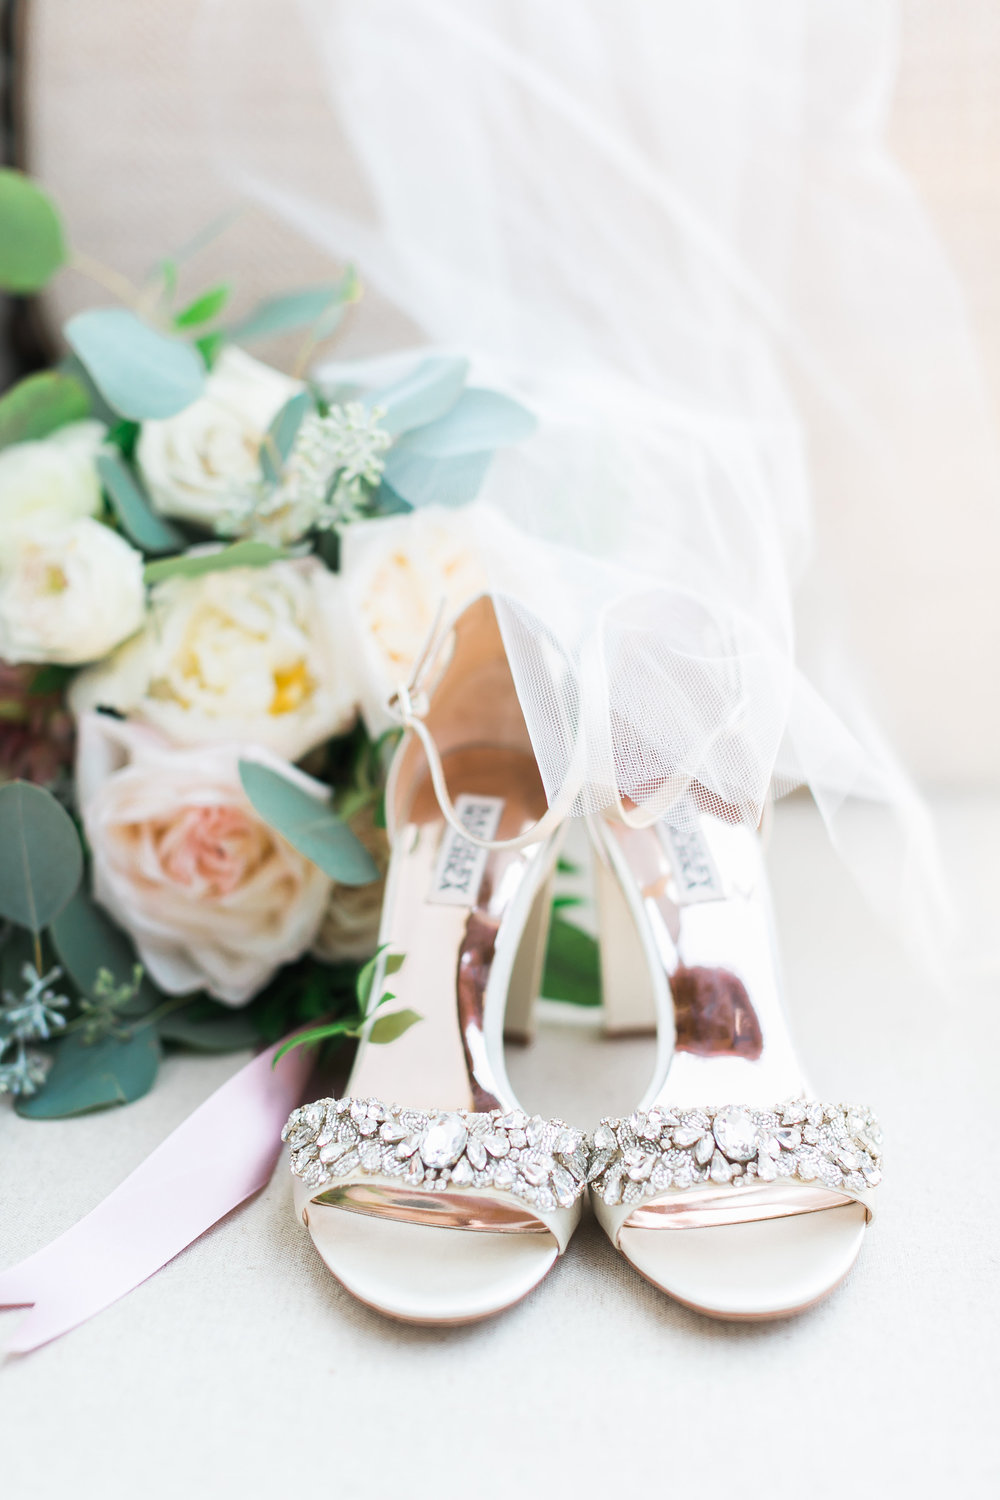 Champagne Badgley Mischka Wedding Shoes.    CREDITS:  Destination Wedding Planner  ANDREA EPPOLITO EVENTS   ·  Images by  J.ANNE P  HOTOGRAPHY   ·  Video  HOO FILMS   ·  Venue Ritz Carlton Bacara Santa Barbara  · Gown  MONIQUE LHULLIER  · Bridesmaids Dresses  SHOW ME YOUR MUMU  · Stationery  SHE PAPERIE  · Bride's Shoes  BADGLEY MISCHKA  · Hair and Makeup  TEAM HAIR AND MAKEUP  · Floral  BLUE MAGNOLIA  · Linen  LA TAVOLA  · Decor Rentals  TENT MERCHANT  · Calligraphy  EBB  ·Lighting  FIVE STAR AV  · Ice Cream Station  MCCONNELL'S ICE CREAM